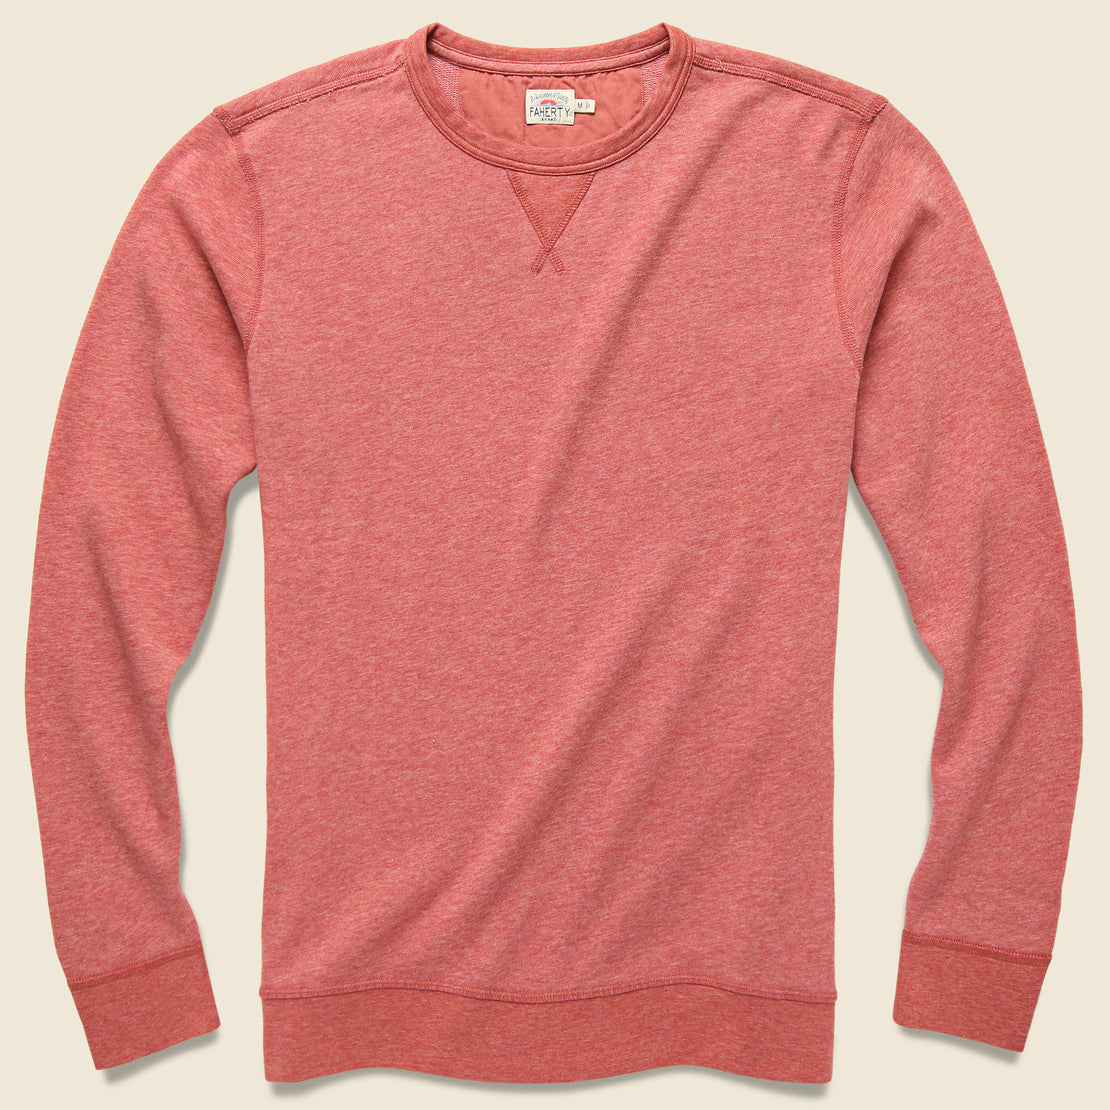 Faherty French Terry Crewneck - Faded Red